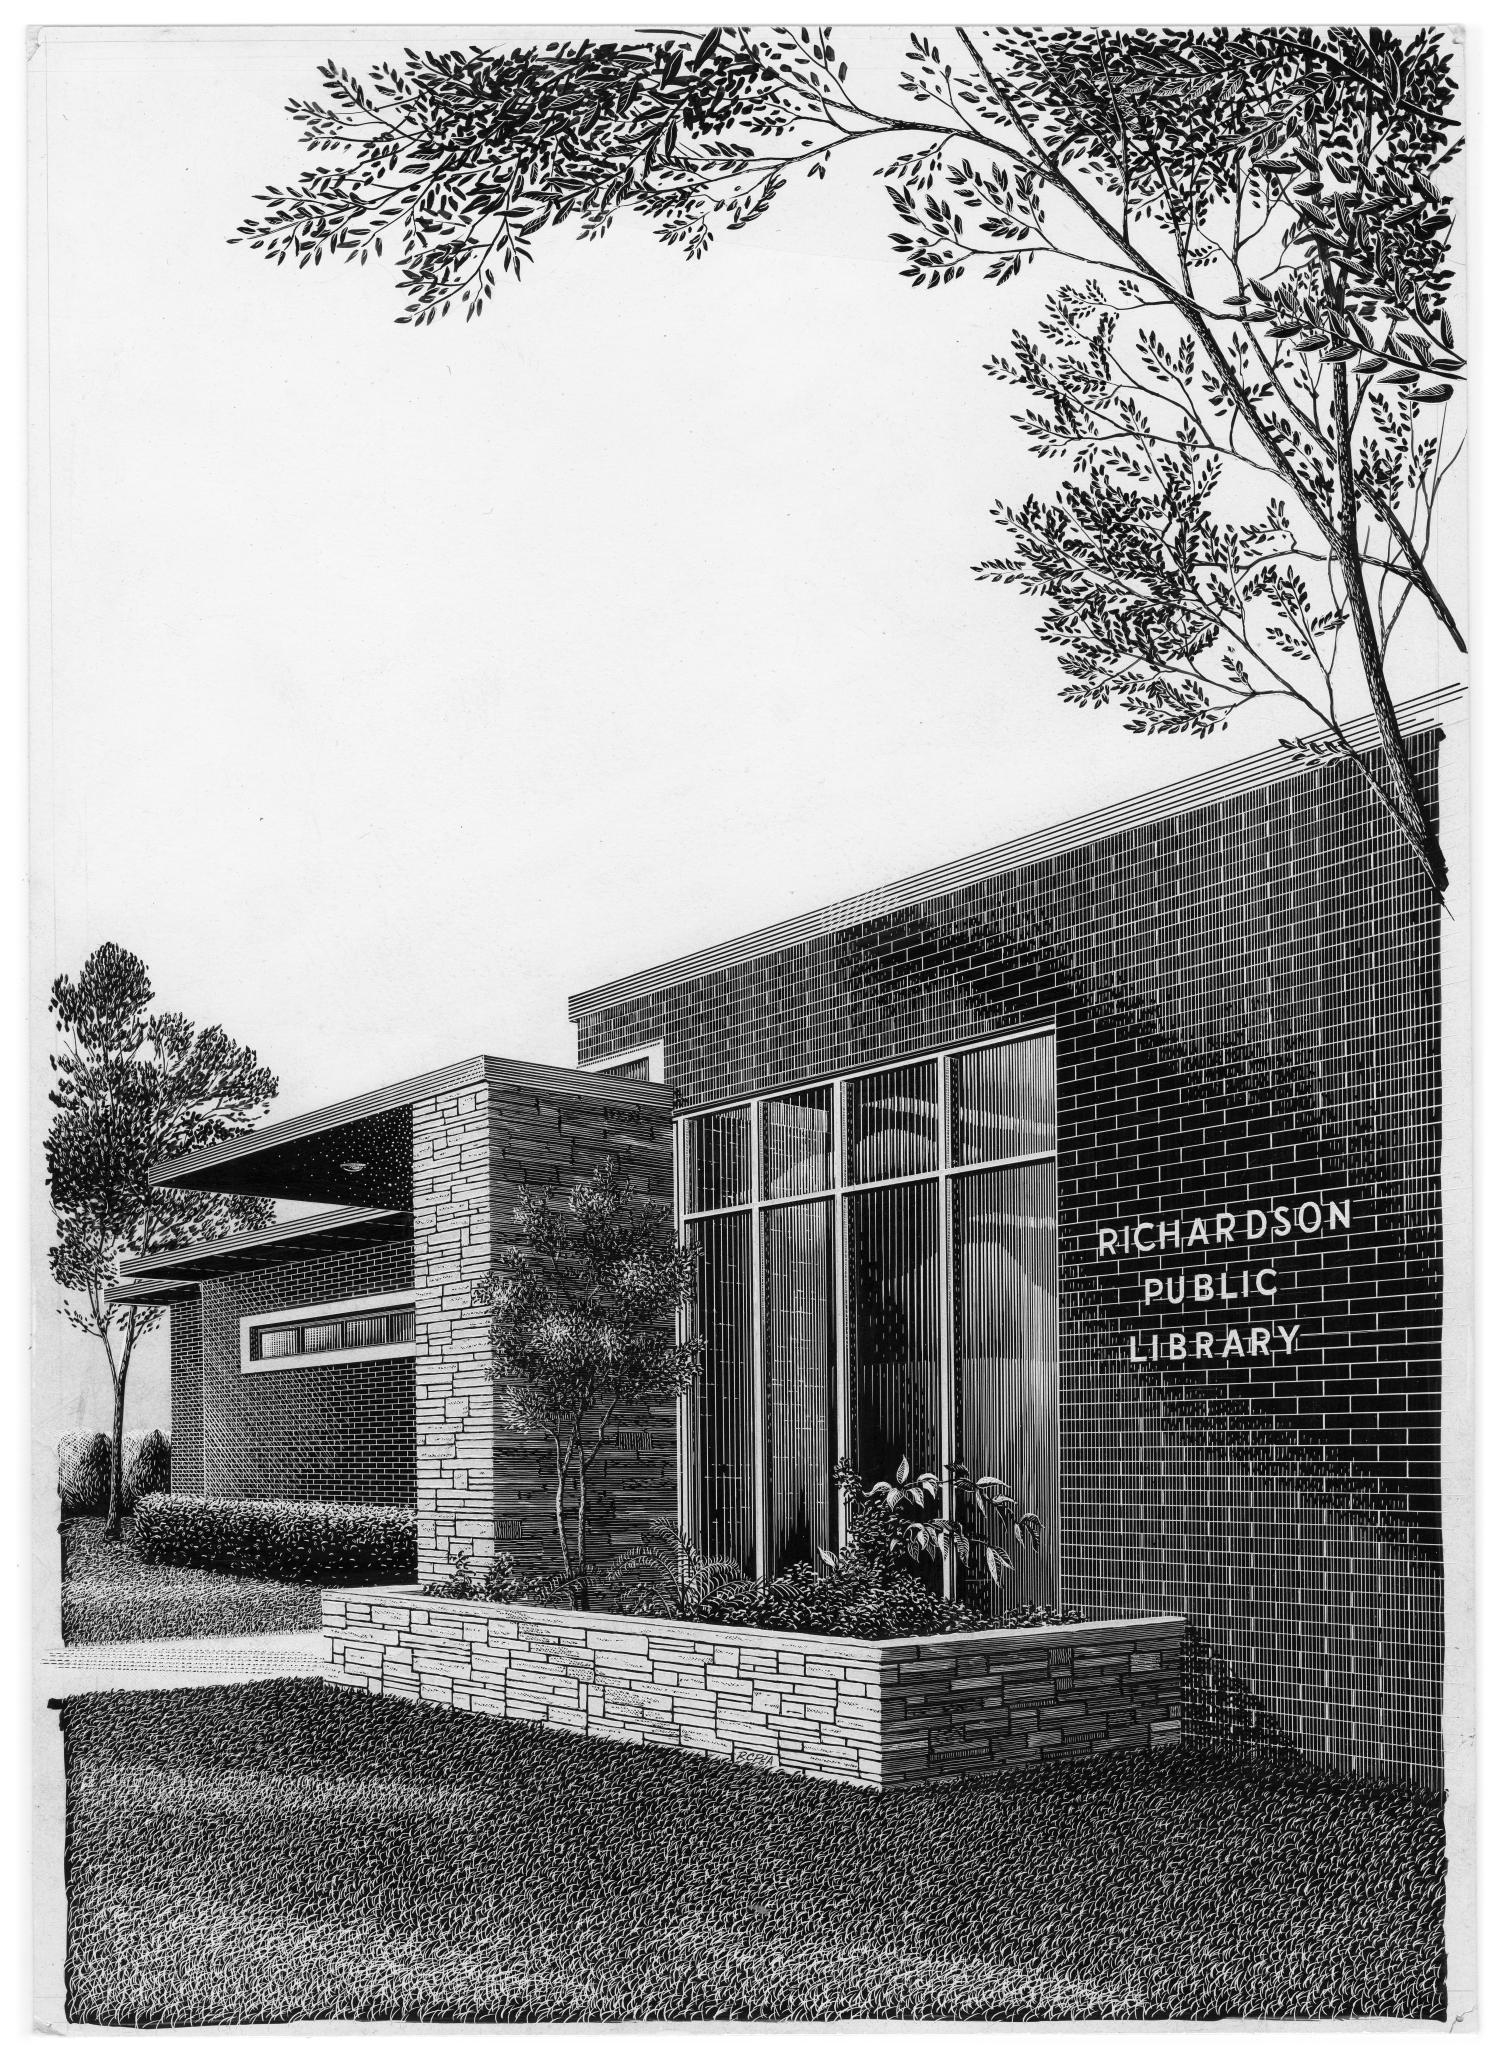 """Richardson Public Library, 310 East Tyler Street, Illustration of Richardson Public Library on 310 East Tyler Street in Richardson, Texas. The drawing depicts the building as made out of bricks, with a sidewalk leading to an awning. There is a flower bed in front of a set of windows. Text on the side says """"Richardson Public Library."""" The building was in use from 1959 until the current library building opened in 1970.,"""